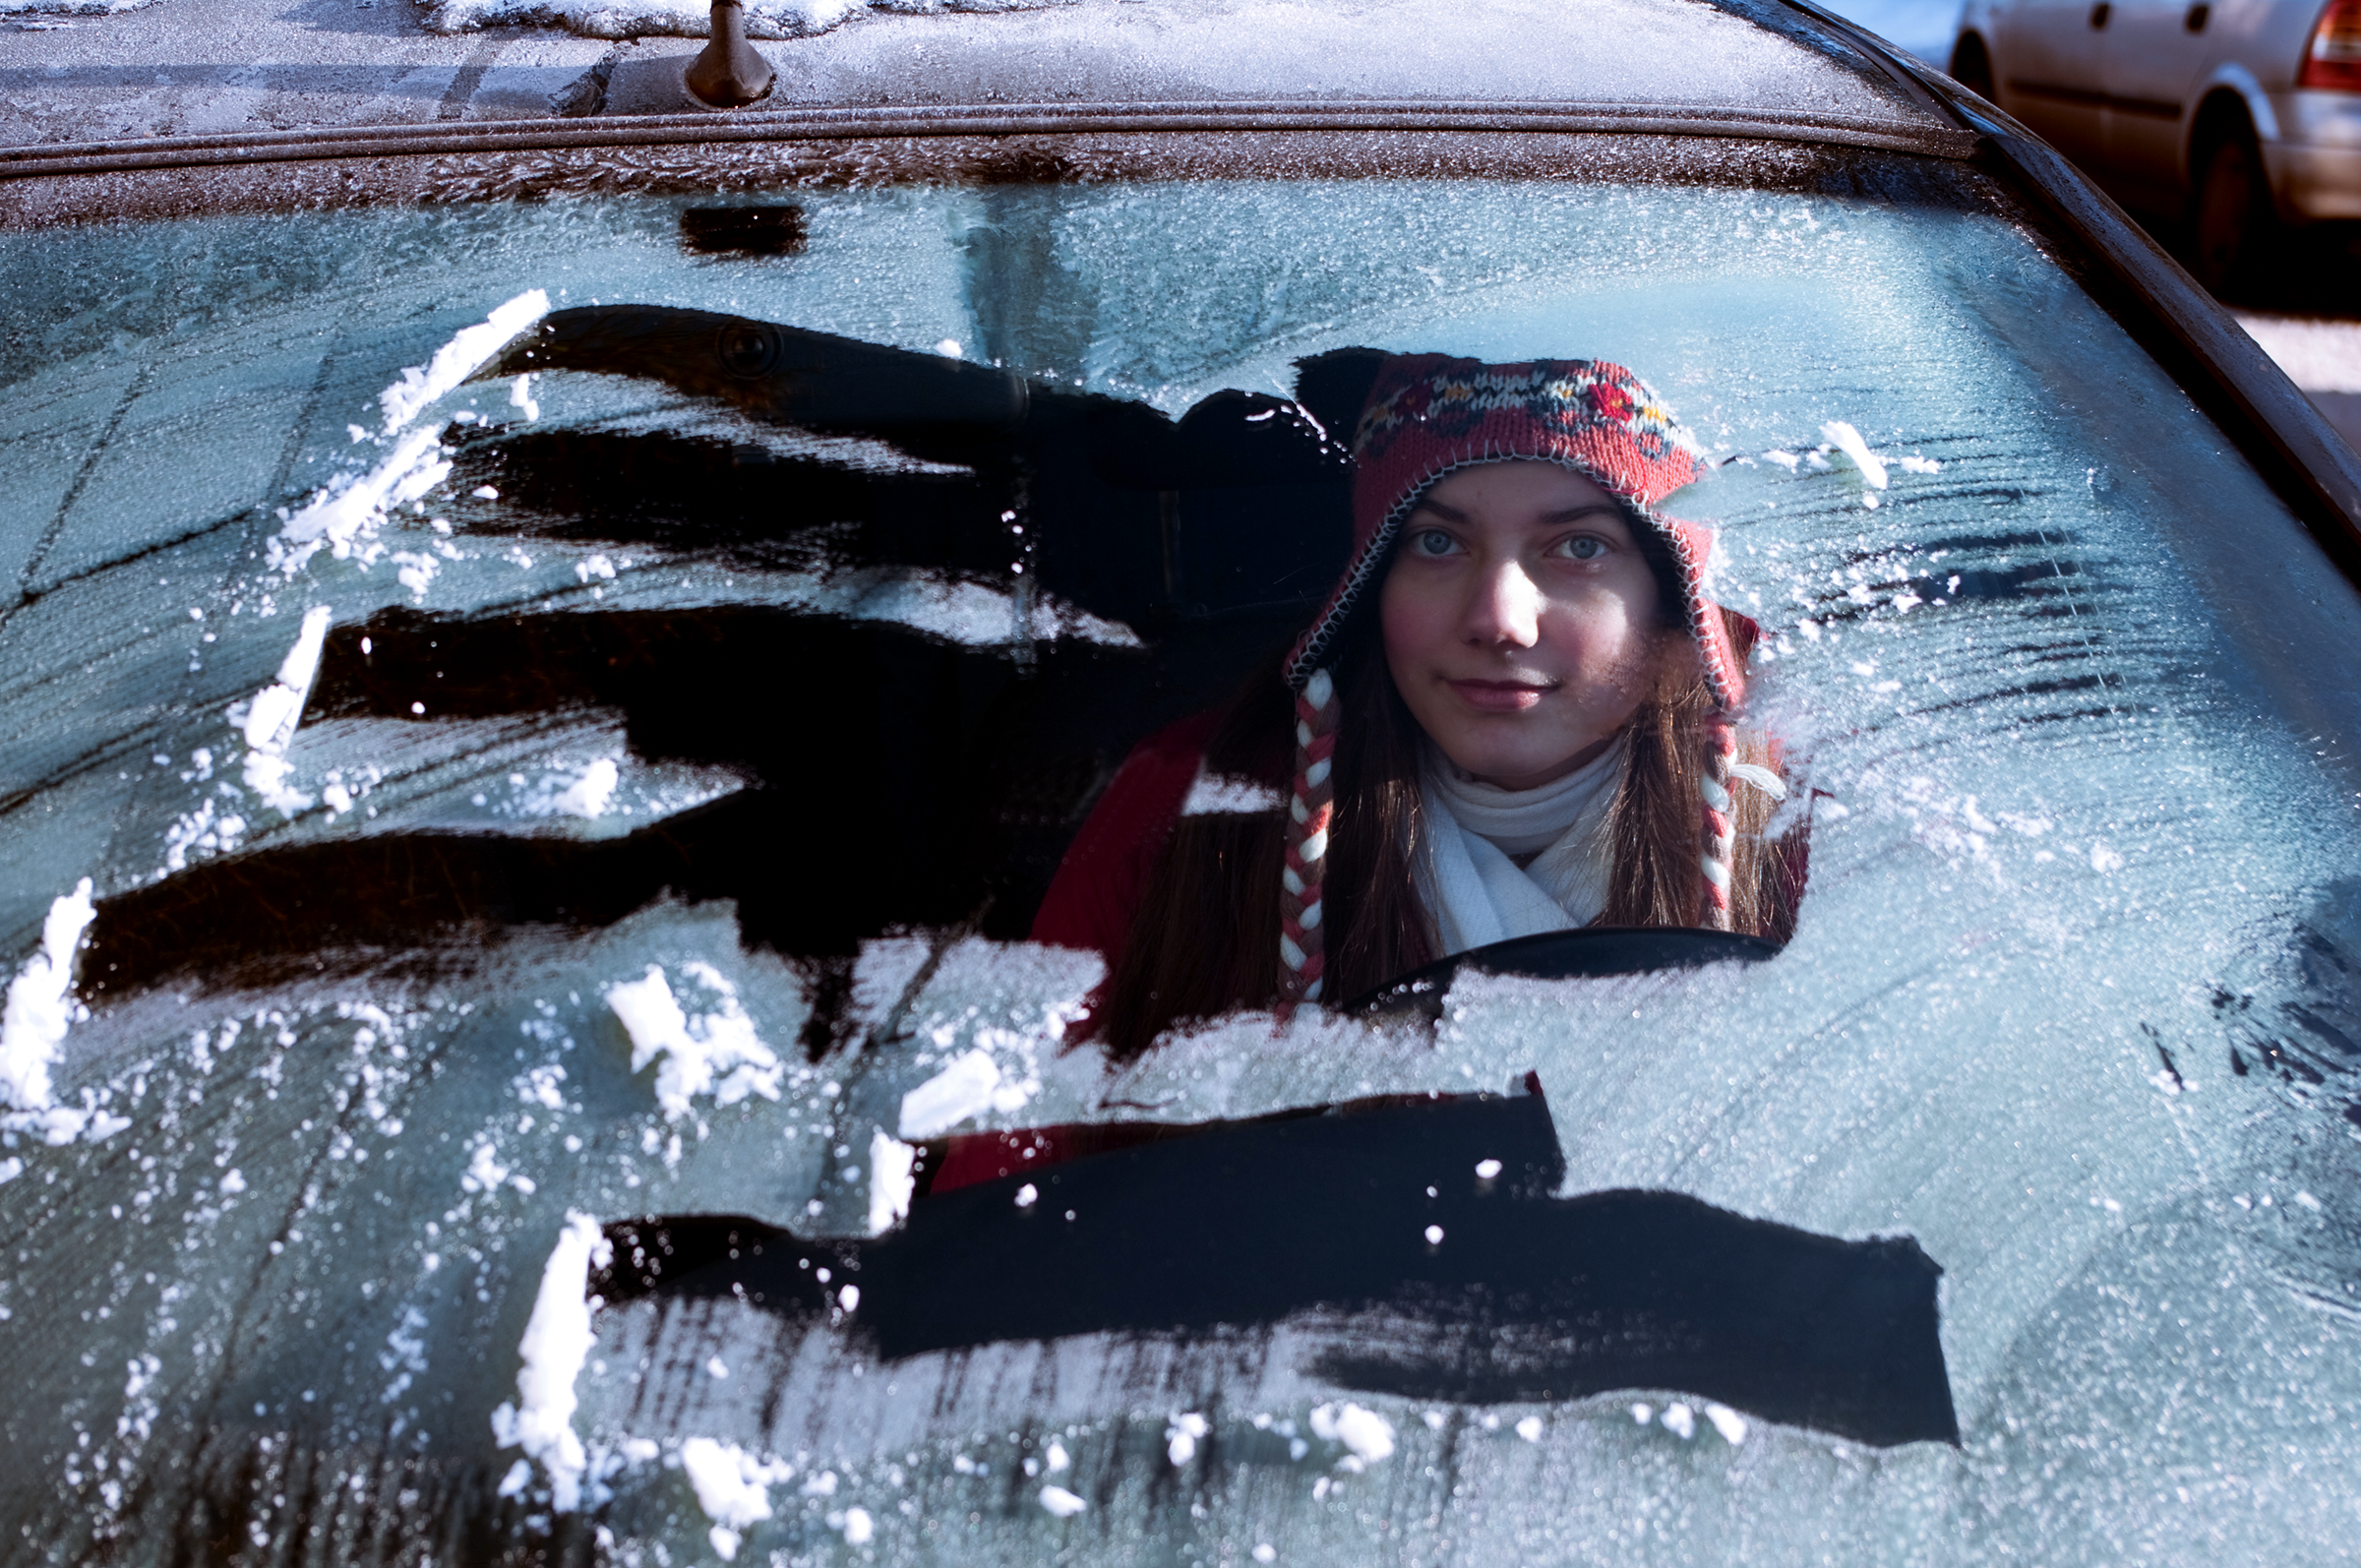 Young female driving a car, but did not scrap all of the snow off of the windshield.>From Media Library>From Media Library>From Media Library>From Media Library>From Media Library>From Media Library>From Media Library>From Media Library>From Media Library>From Media Library>From Media Library>From Media Library>From Media Library>From Media Library